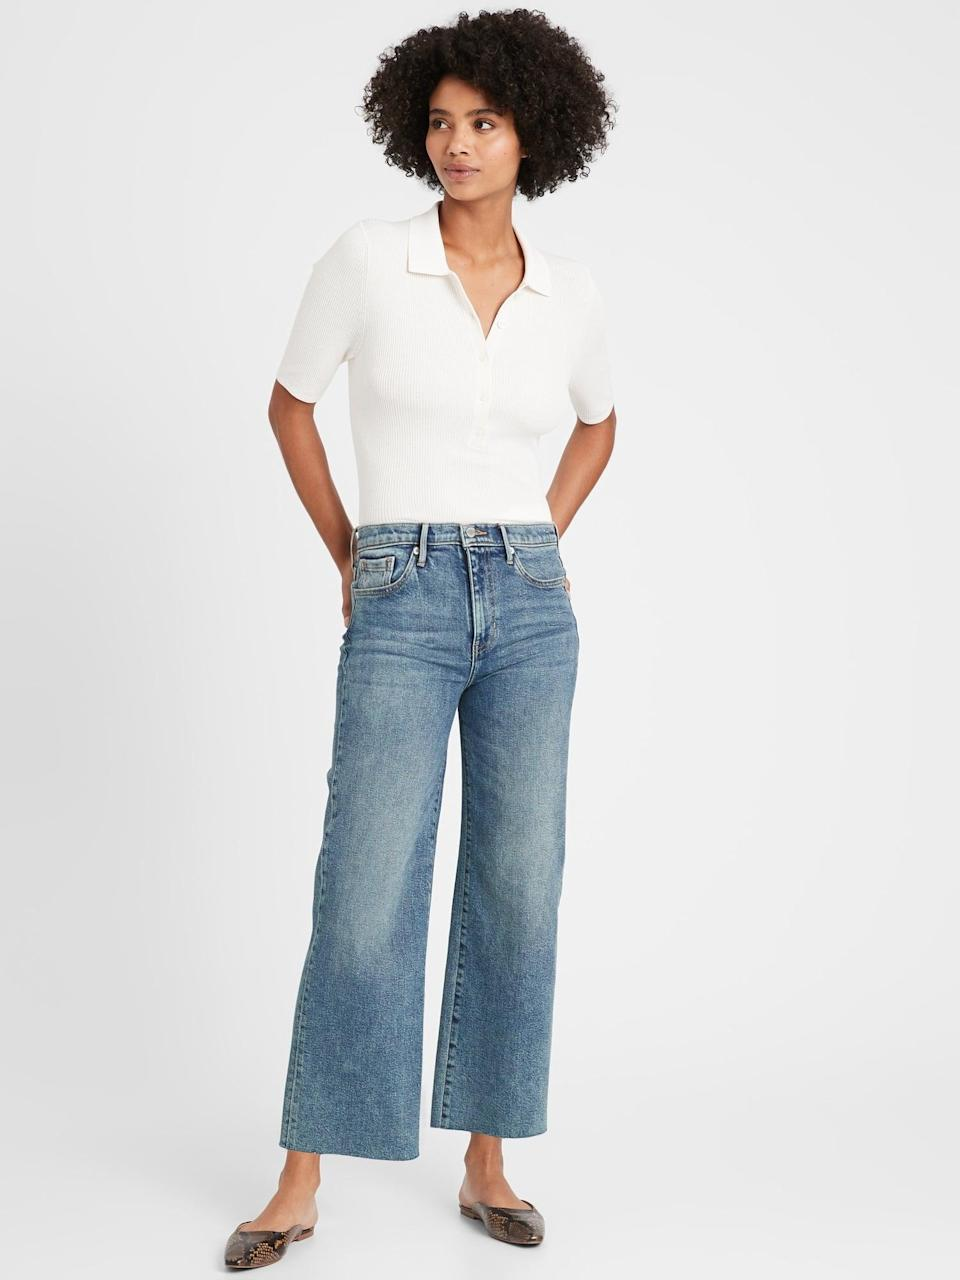 """<p>Though not a cozy knit, these <span>Banana Republic High-Rise Wide-Leg Cropped Jean</span> ($59, originally $119) are a great sustainable way to <a href=""""https://www.popsugar.com/fashion/best-gap-wide-leg-jeans-review-48056798"""" class=""""link rapid-noclick-resp"""" rel=""""nofollow noopener"""" target=""""_blank"""" data-ylk=""""slk:try this denim style"""">try this denim style</a>.</p>"""